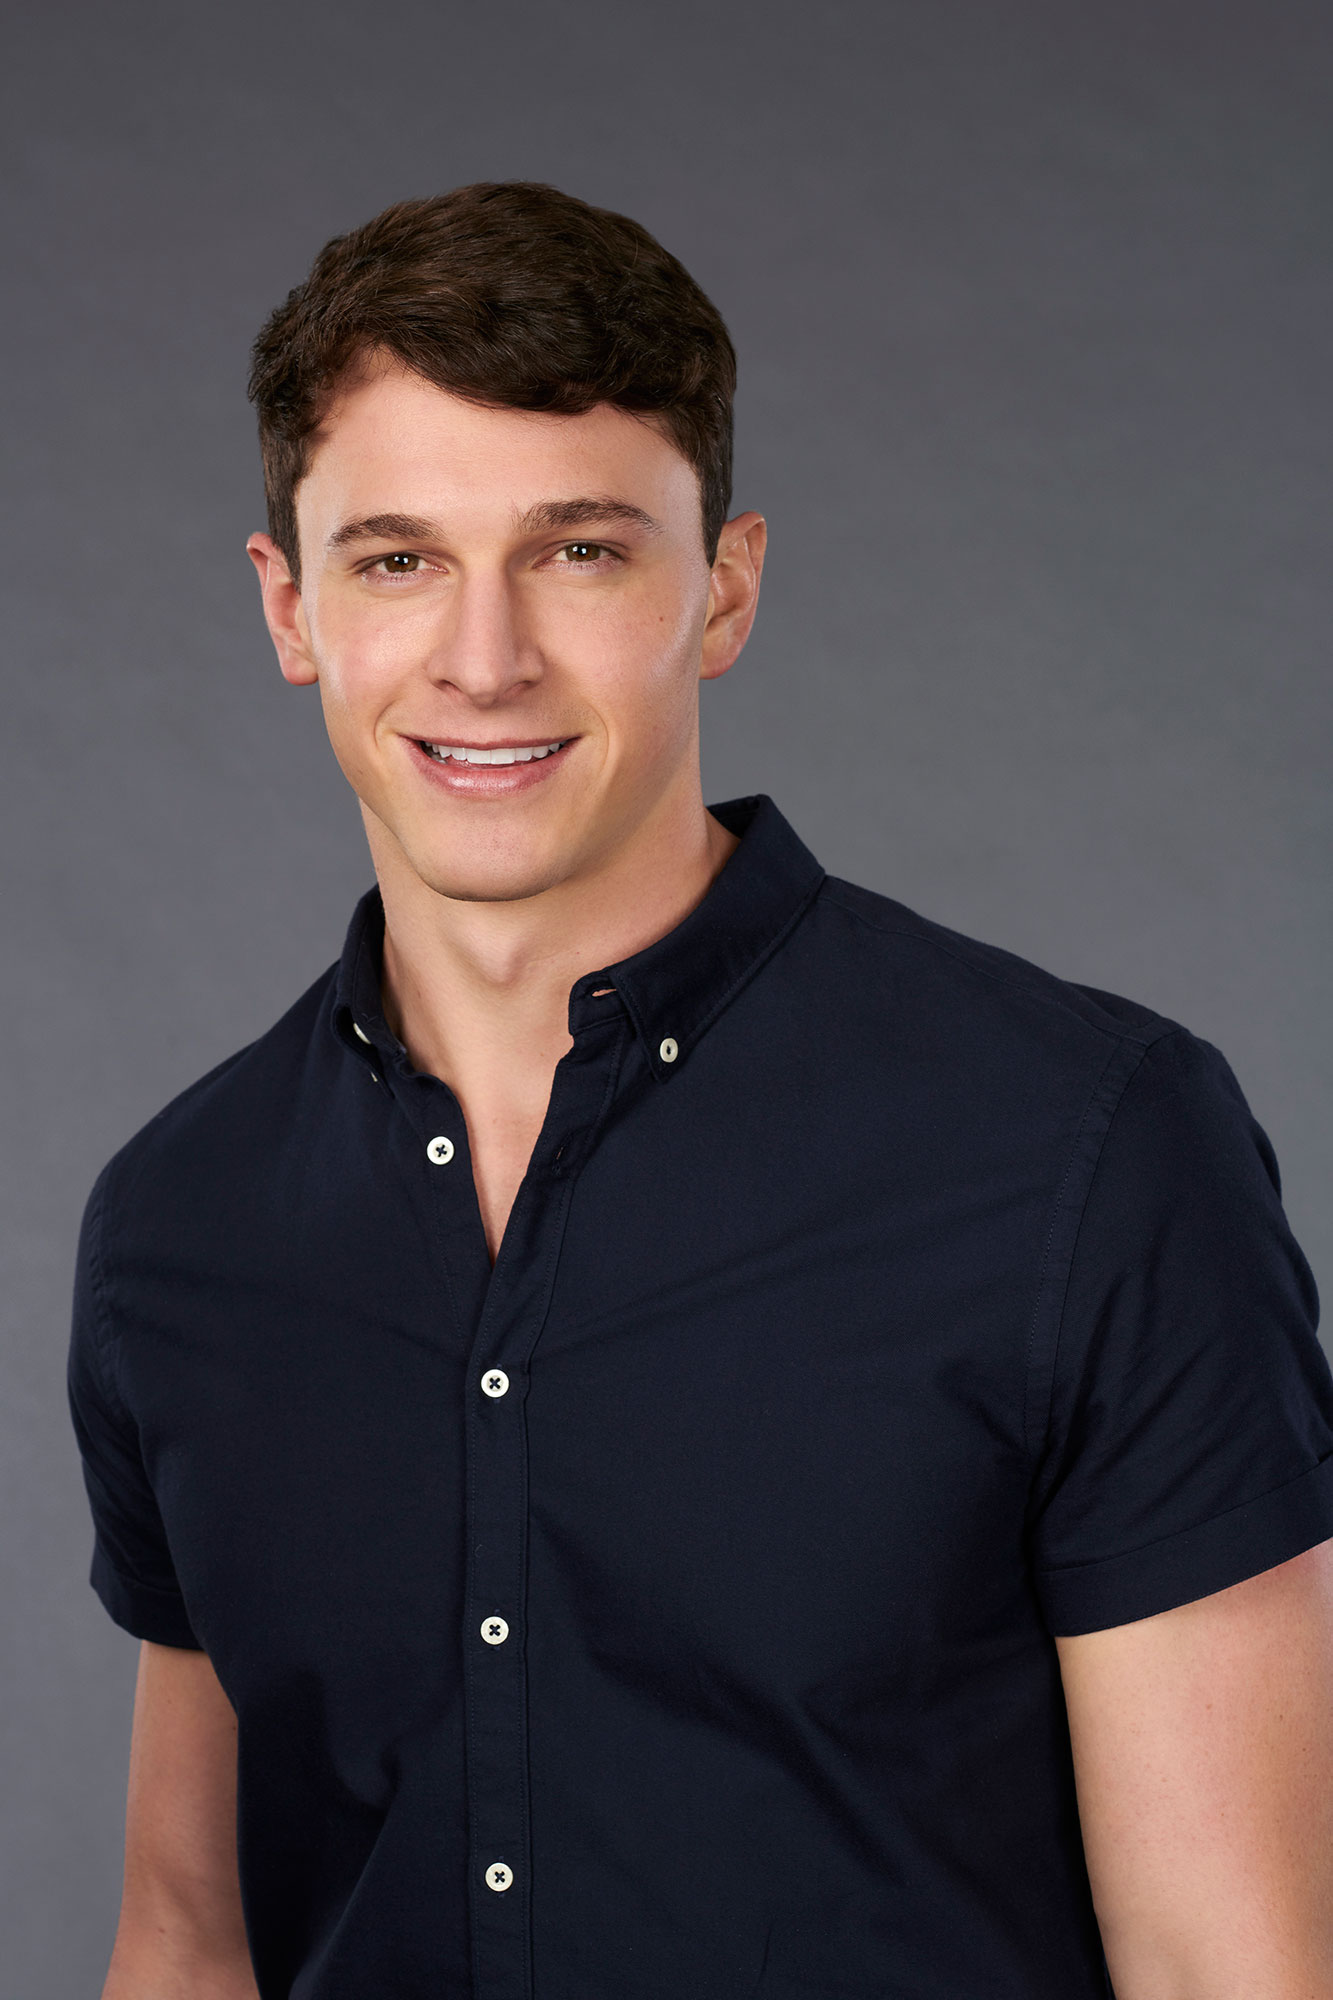 'The Bachelorette' Season 15: 11 Strangest Revelations From Hannah Brown's Suitors' Bios - By day, the 24-year-old is an investment analyst; by night he's a Justin Bieber stan.